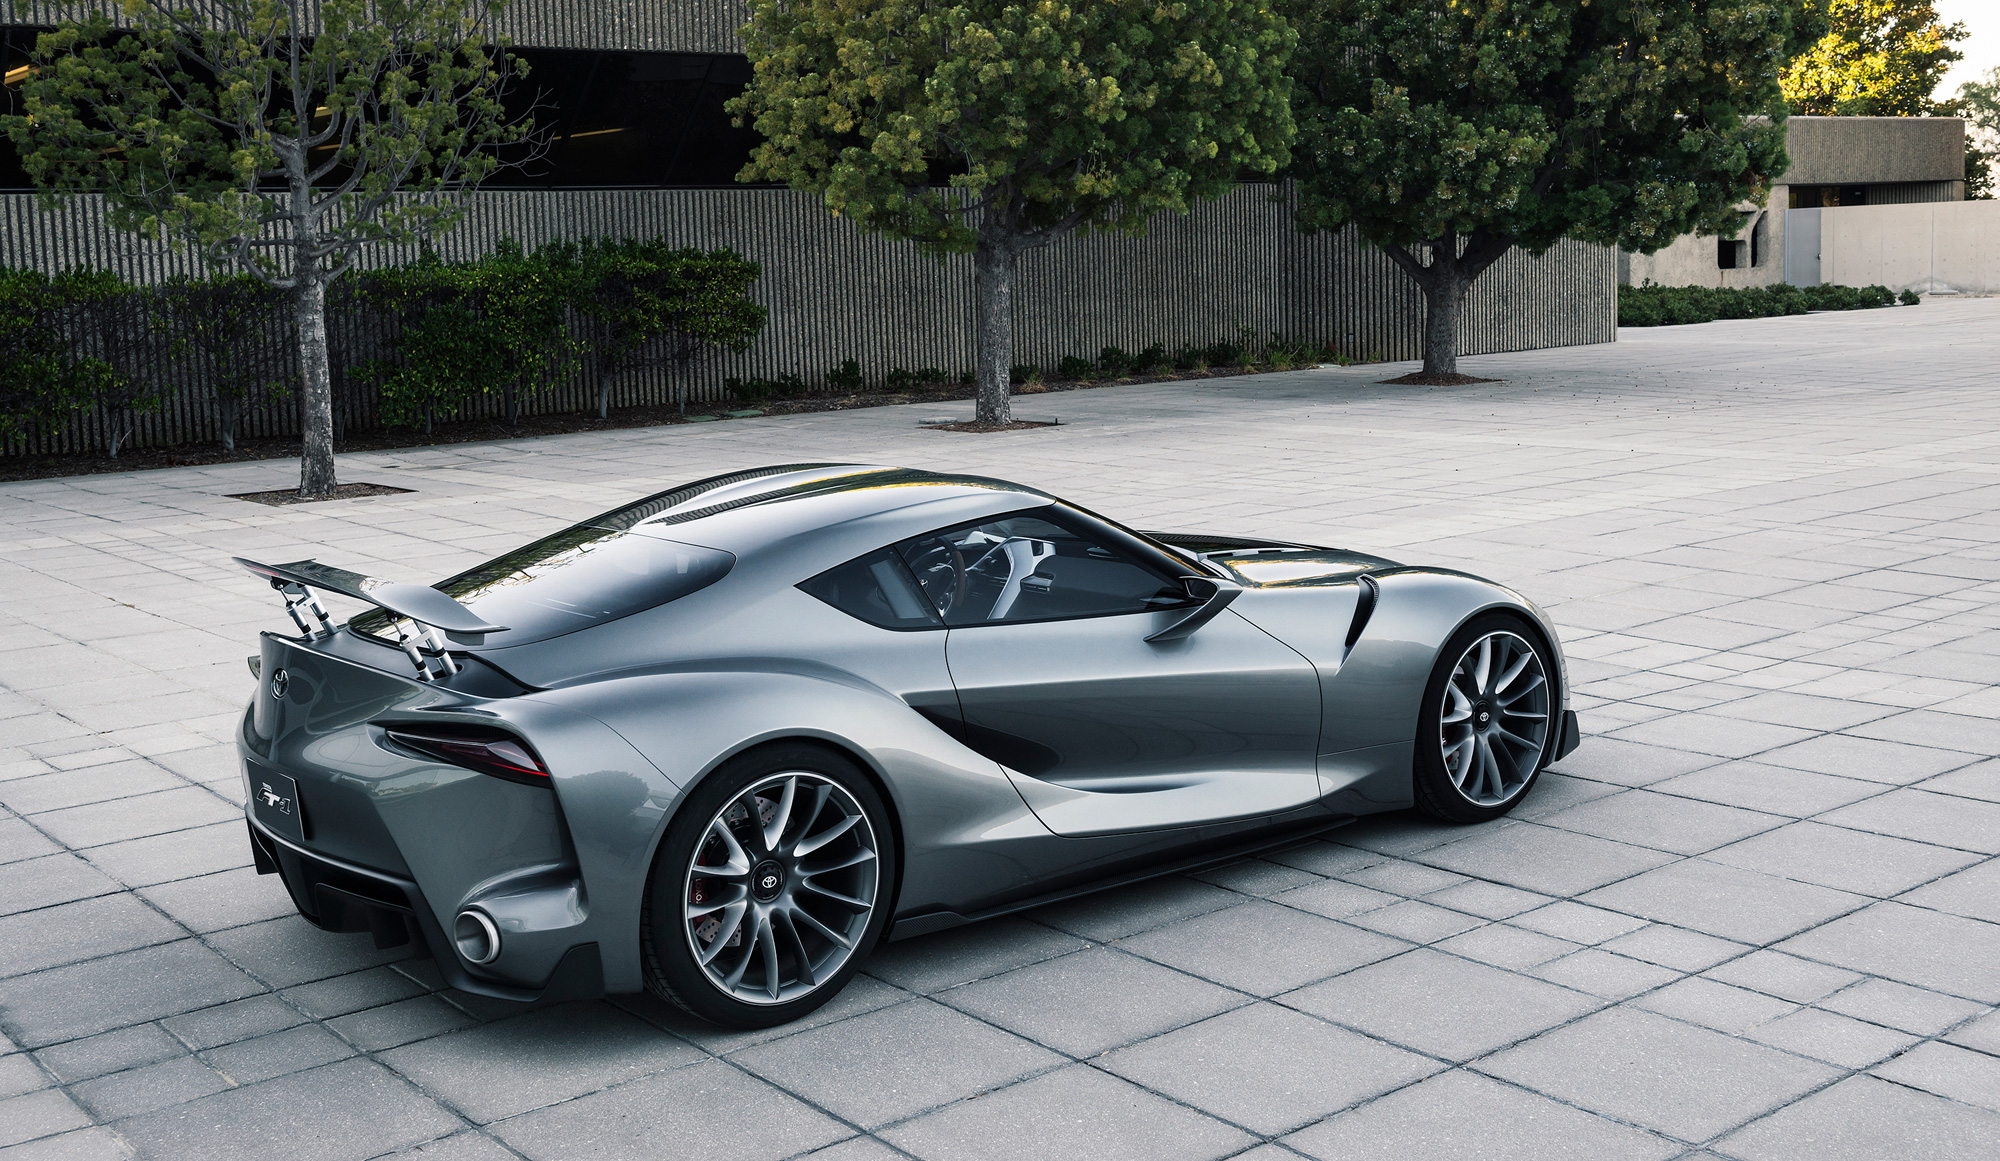 Toyota S FR Trademarked Is This the New Supra AutoGuide News